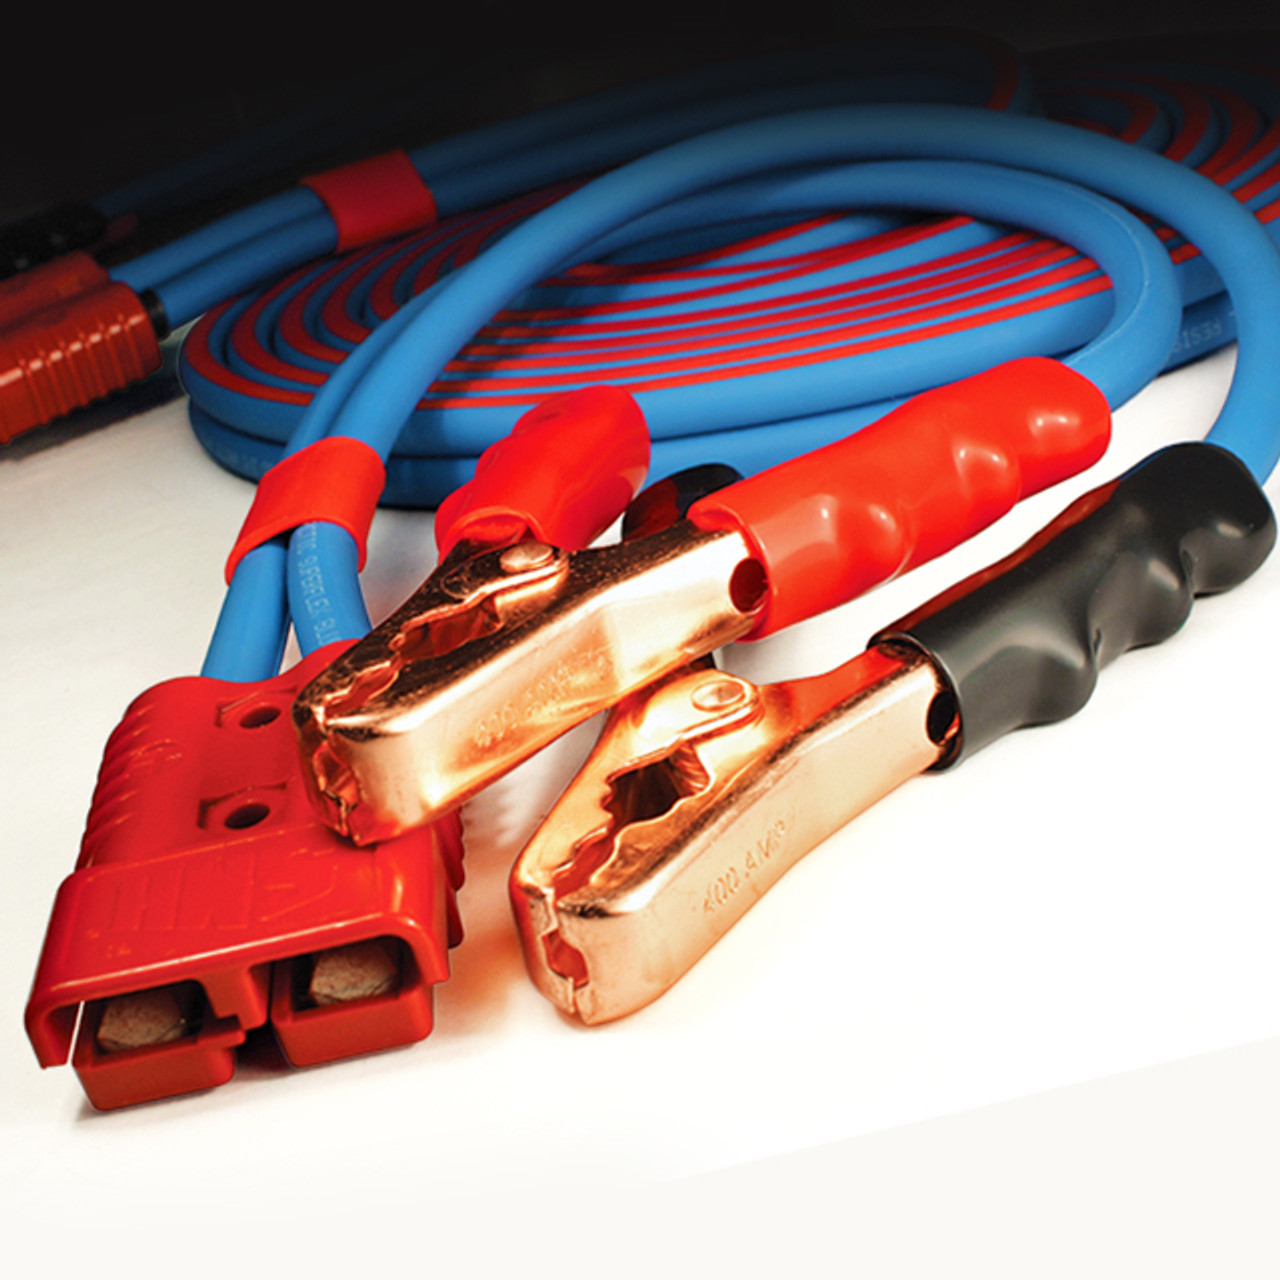 Jumper Cable Clamp Converters are fitted with impact resistant power connectors for quick, secure connections